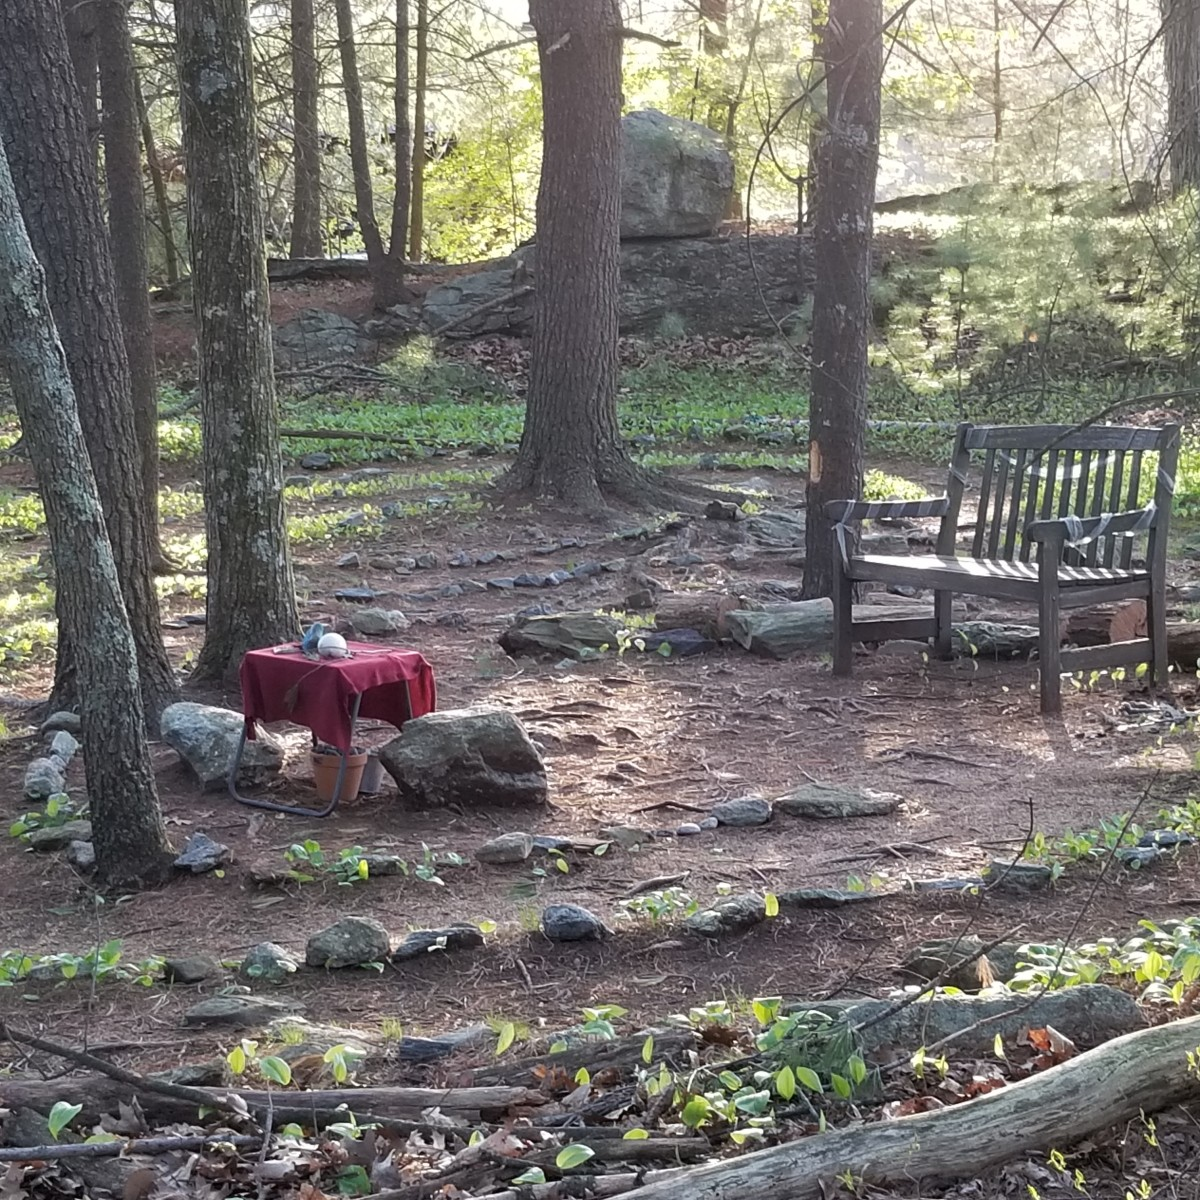 Sitting on the bench at the center of the labyrinth path among the trees is pure poetic enchantment, which I am blessed to witness every day.